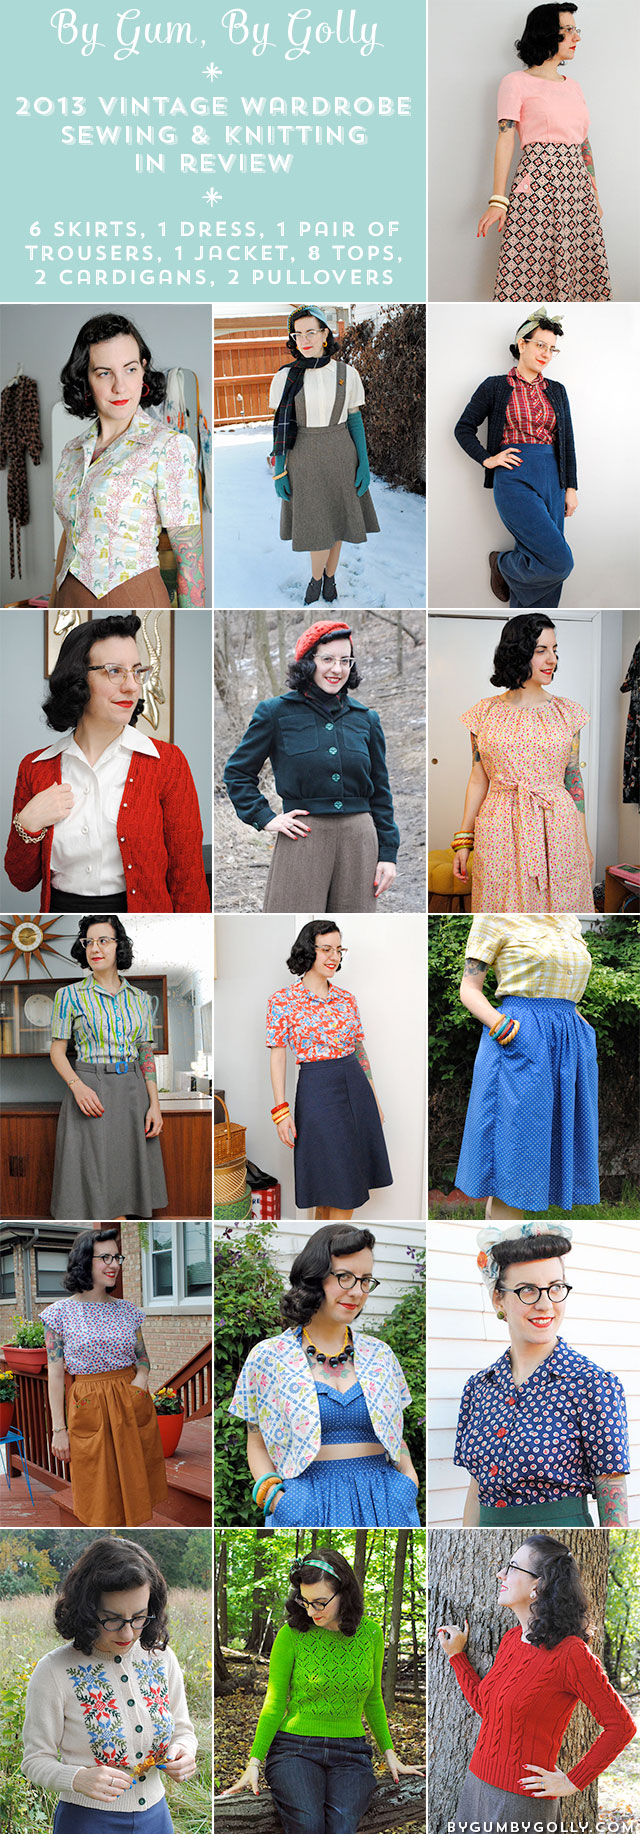 By Gum, By Golly's 2013 vintage sewing & knitting projects